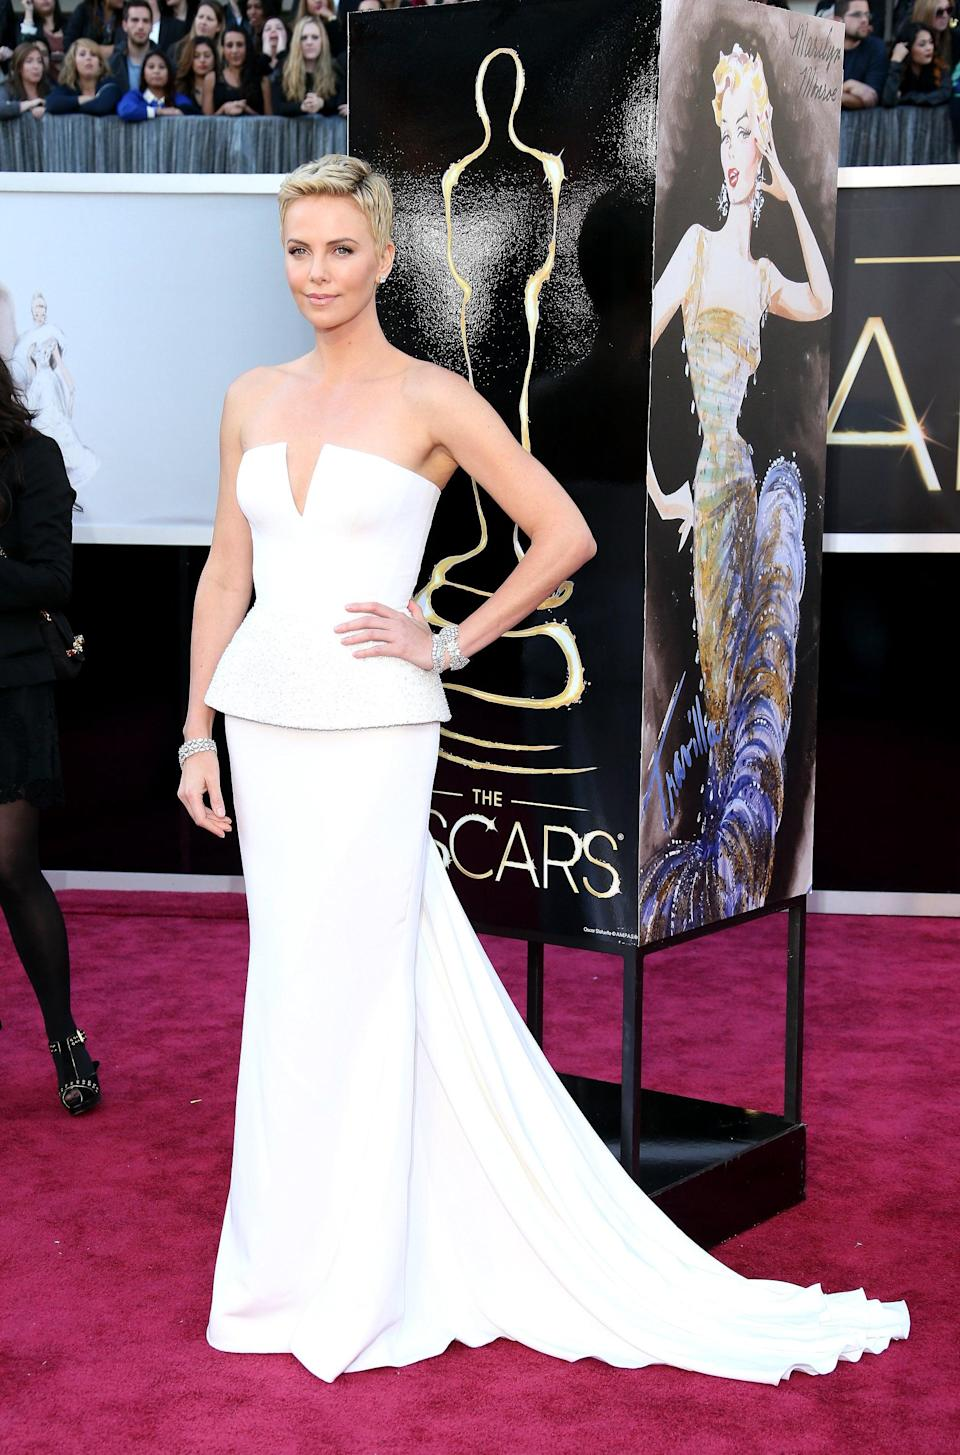 <p>The simplicity of this Dior gown didn't stop it from being one of the most stunning dresses on the red carpet in 2013.</p>